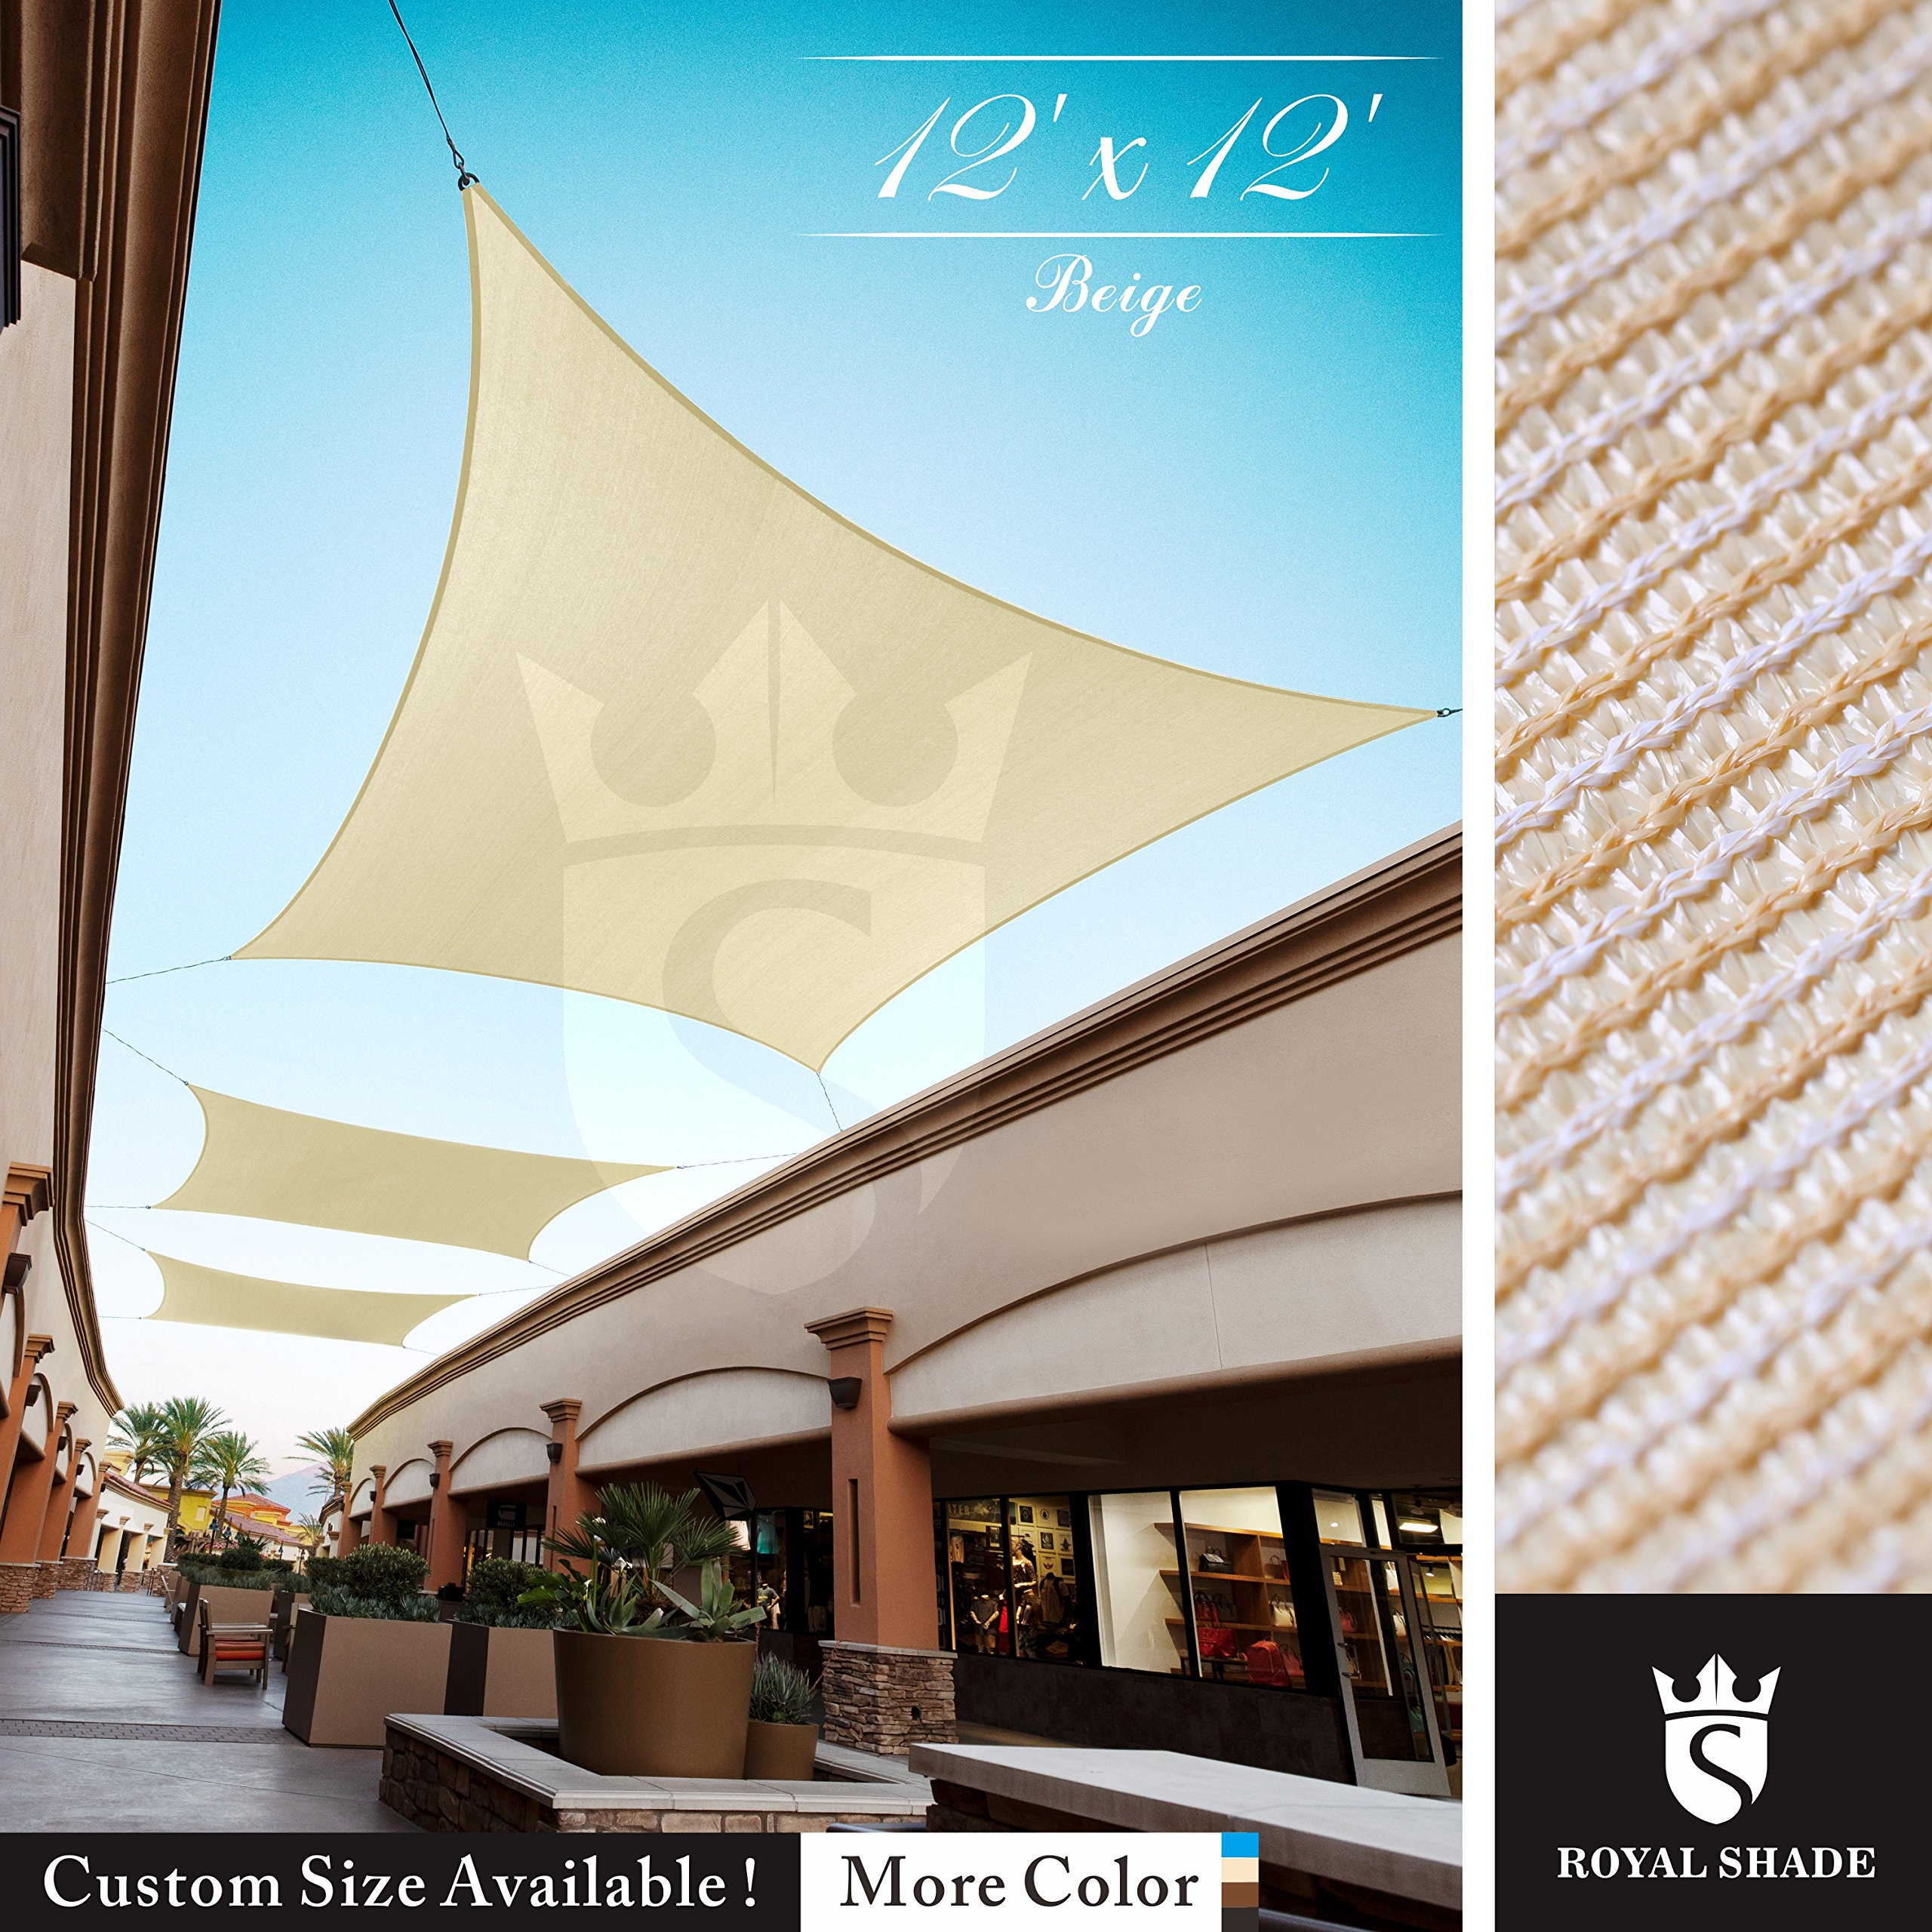 Royal Shade 12' x 12' Beige Square Sun Shade Sail Canopy Outdoor Patio Fabric Shelter Cloth Screen Awning - 95% UV Protection, 200 GSM, Heavy Duty, 5 Years Warranty, We Make Custom Size by Royal Shade